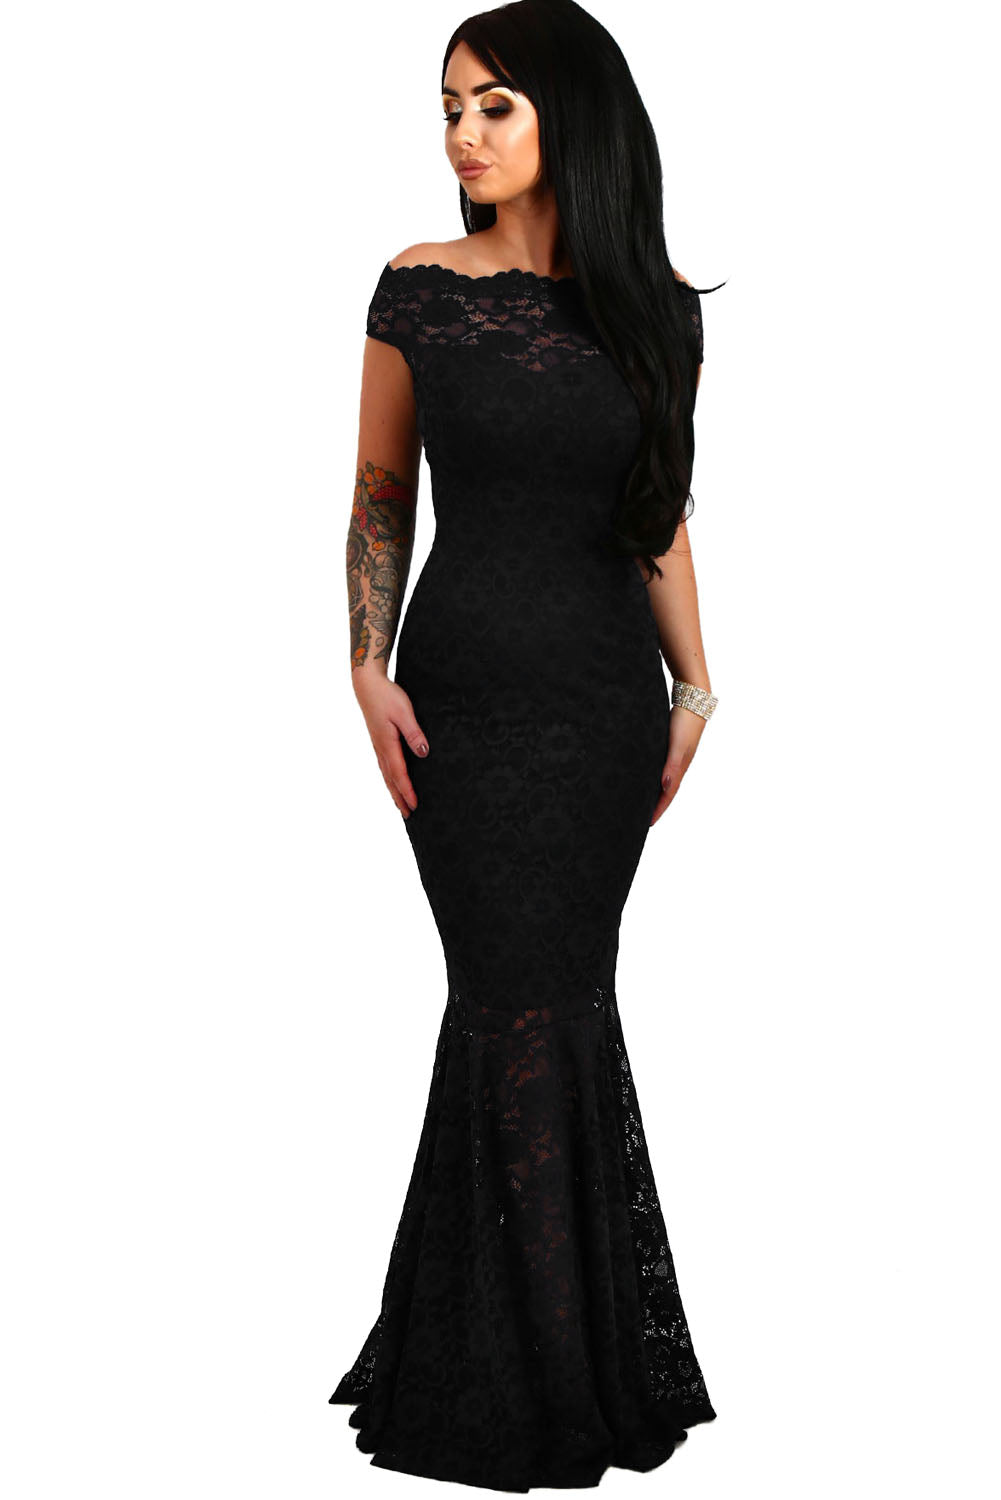 Her Fashion Gorgeous Black Bardot Lace Fishtail Wedding Maxi Dress